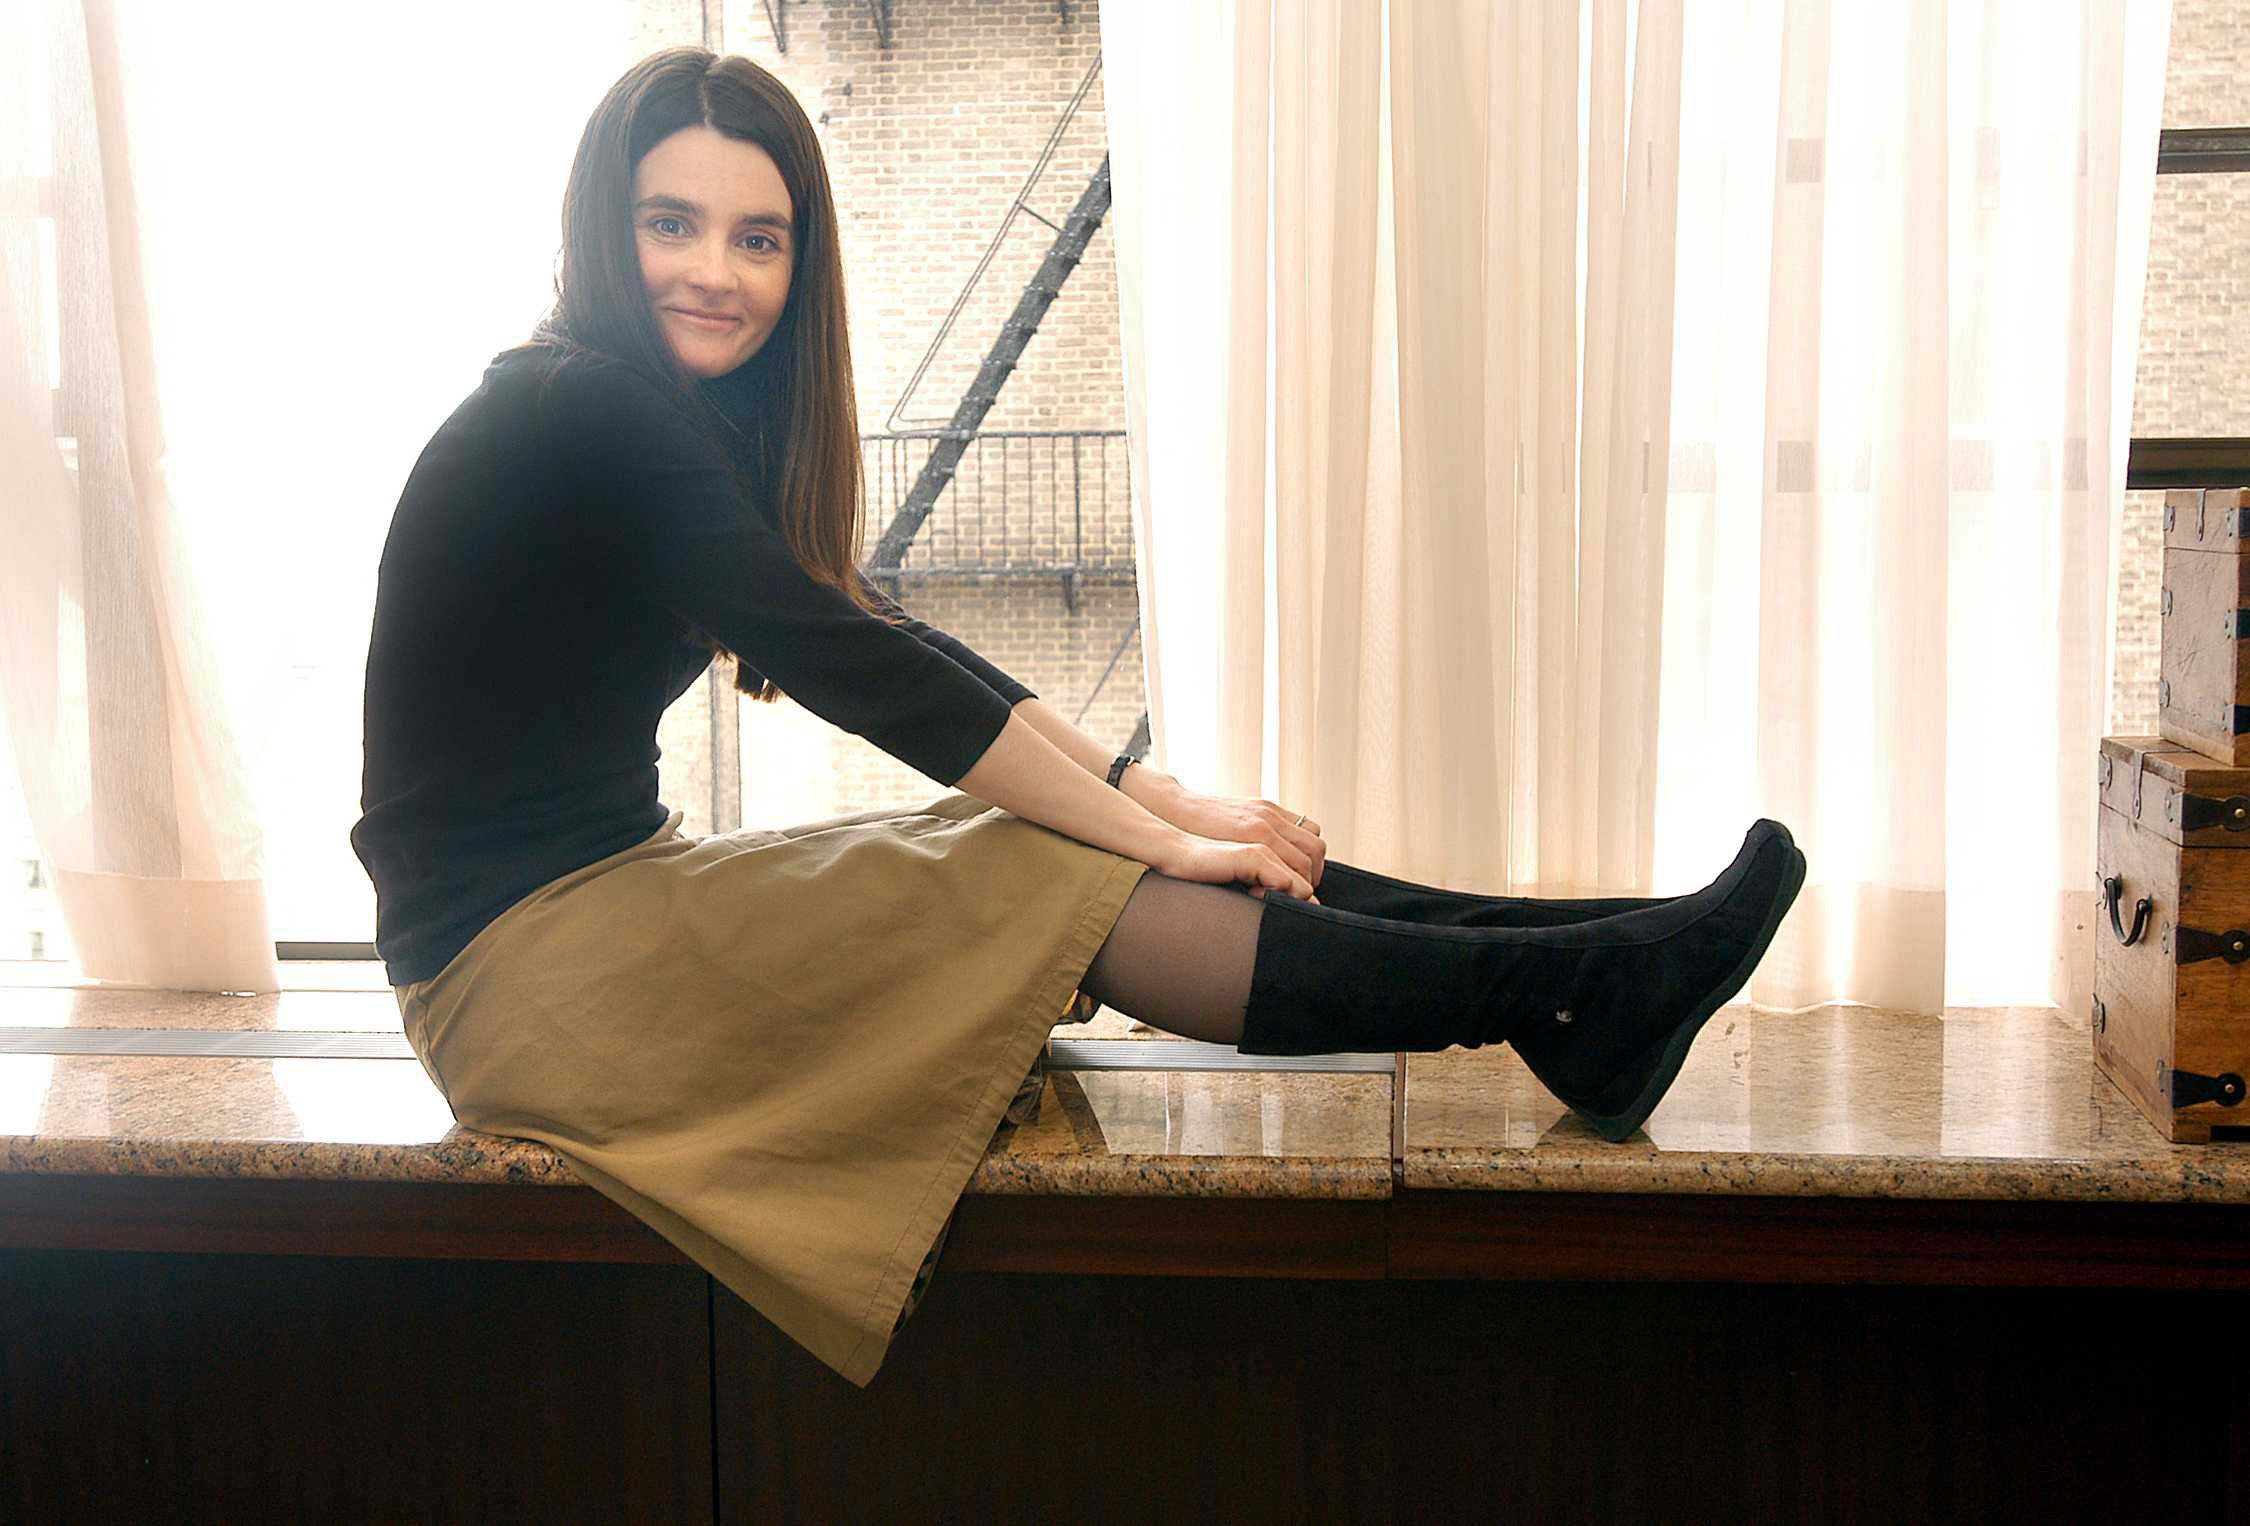 """March 2, 2004, New York, New York, USA: Known for roles in """"Bridget Jones's Diary"""", """"Trainspotting"""" and """"Harry Potter"""", Scottish actress Shirley Henderson is now promoting two of her upcoming features set to open this spring in New York and Los Angeles: """"Intermission"""", also staring Colin Farrell and Cillian Murphy is due out March 19 and """"Wilbur Wants to Kill Himself"""" is due out later this season. Credit: Victoria Will / Polaris / eyevine For further information please contact eyevine. tel: 020 8709 8709 email: info@eyevine.com www.eyevine.com"""